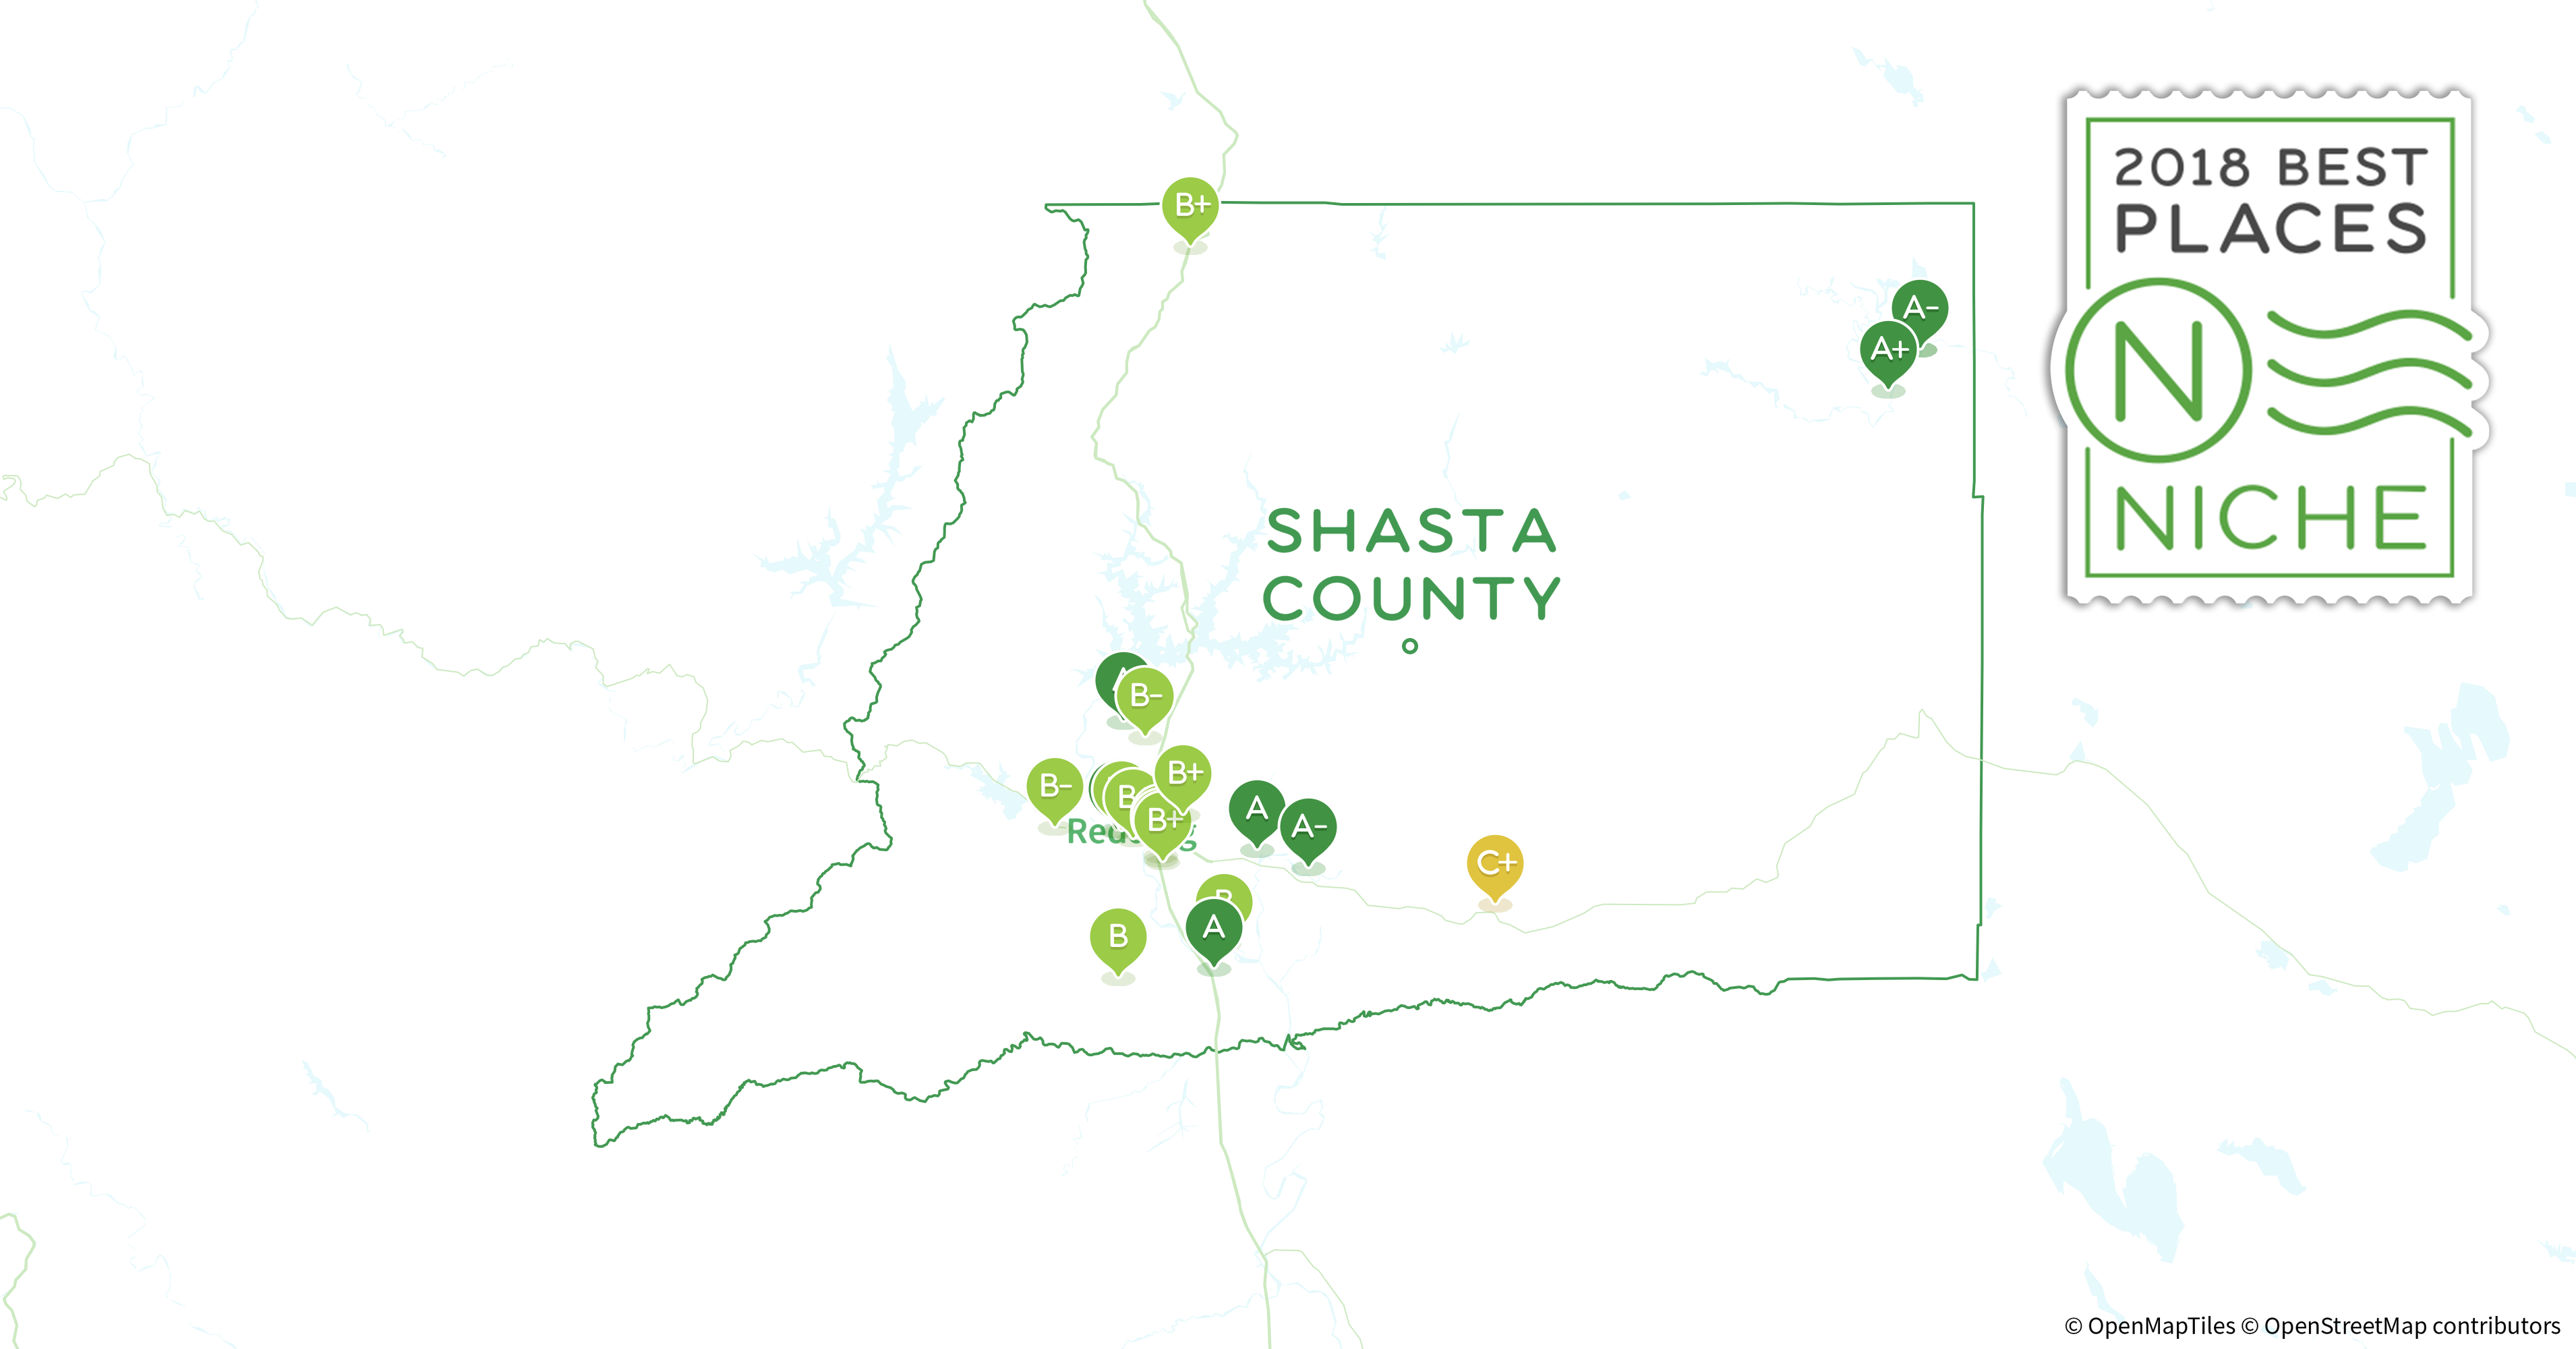 2018 Best Places to Live in Shasta County, CA - Niche